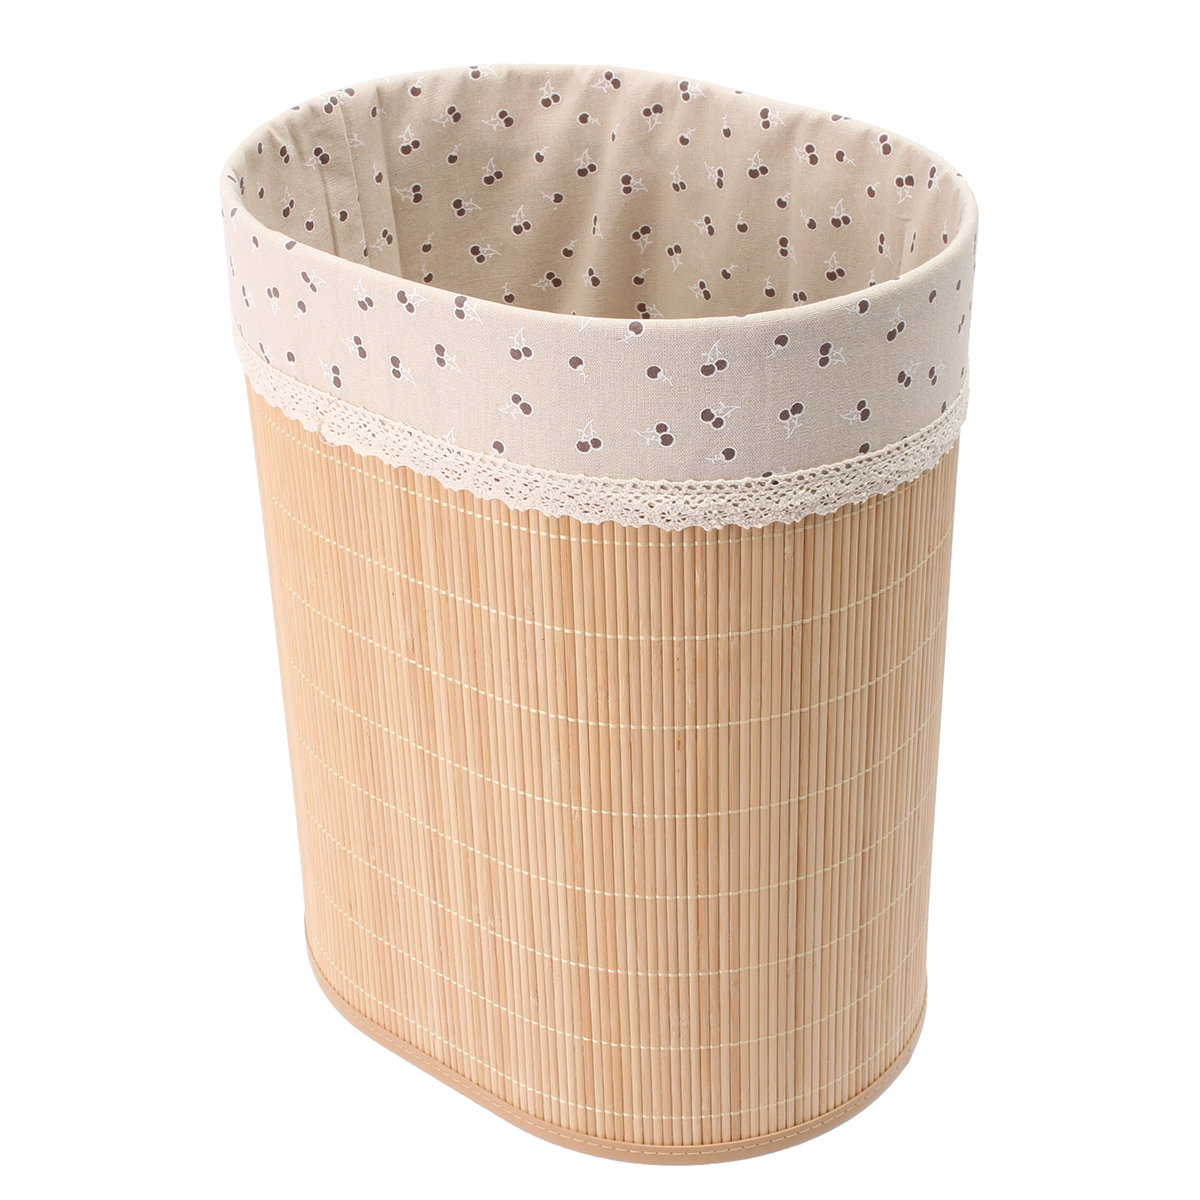 Bamboo Laundry Hamper Basket Clothes Storage Bag Sorter Bin Organizer Lid S L